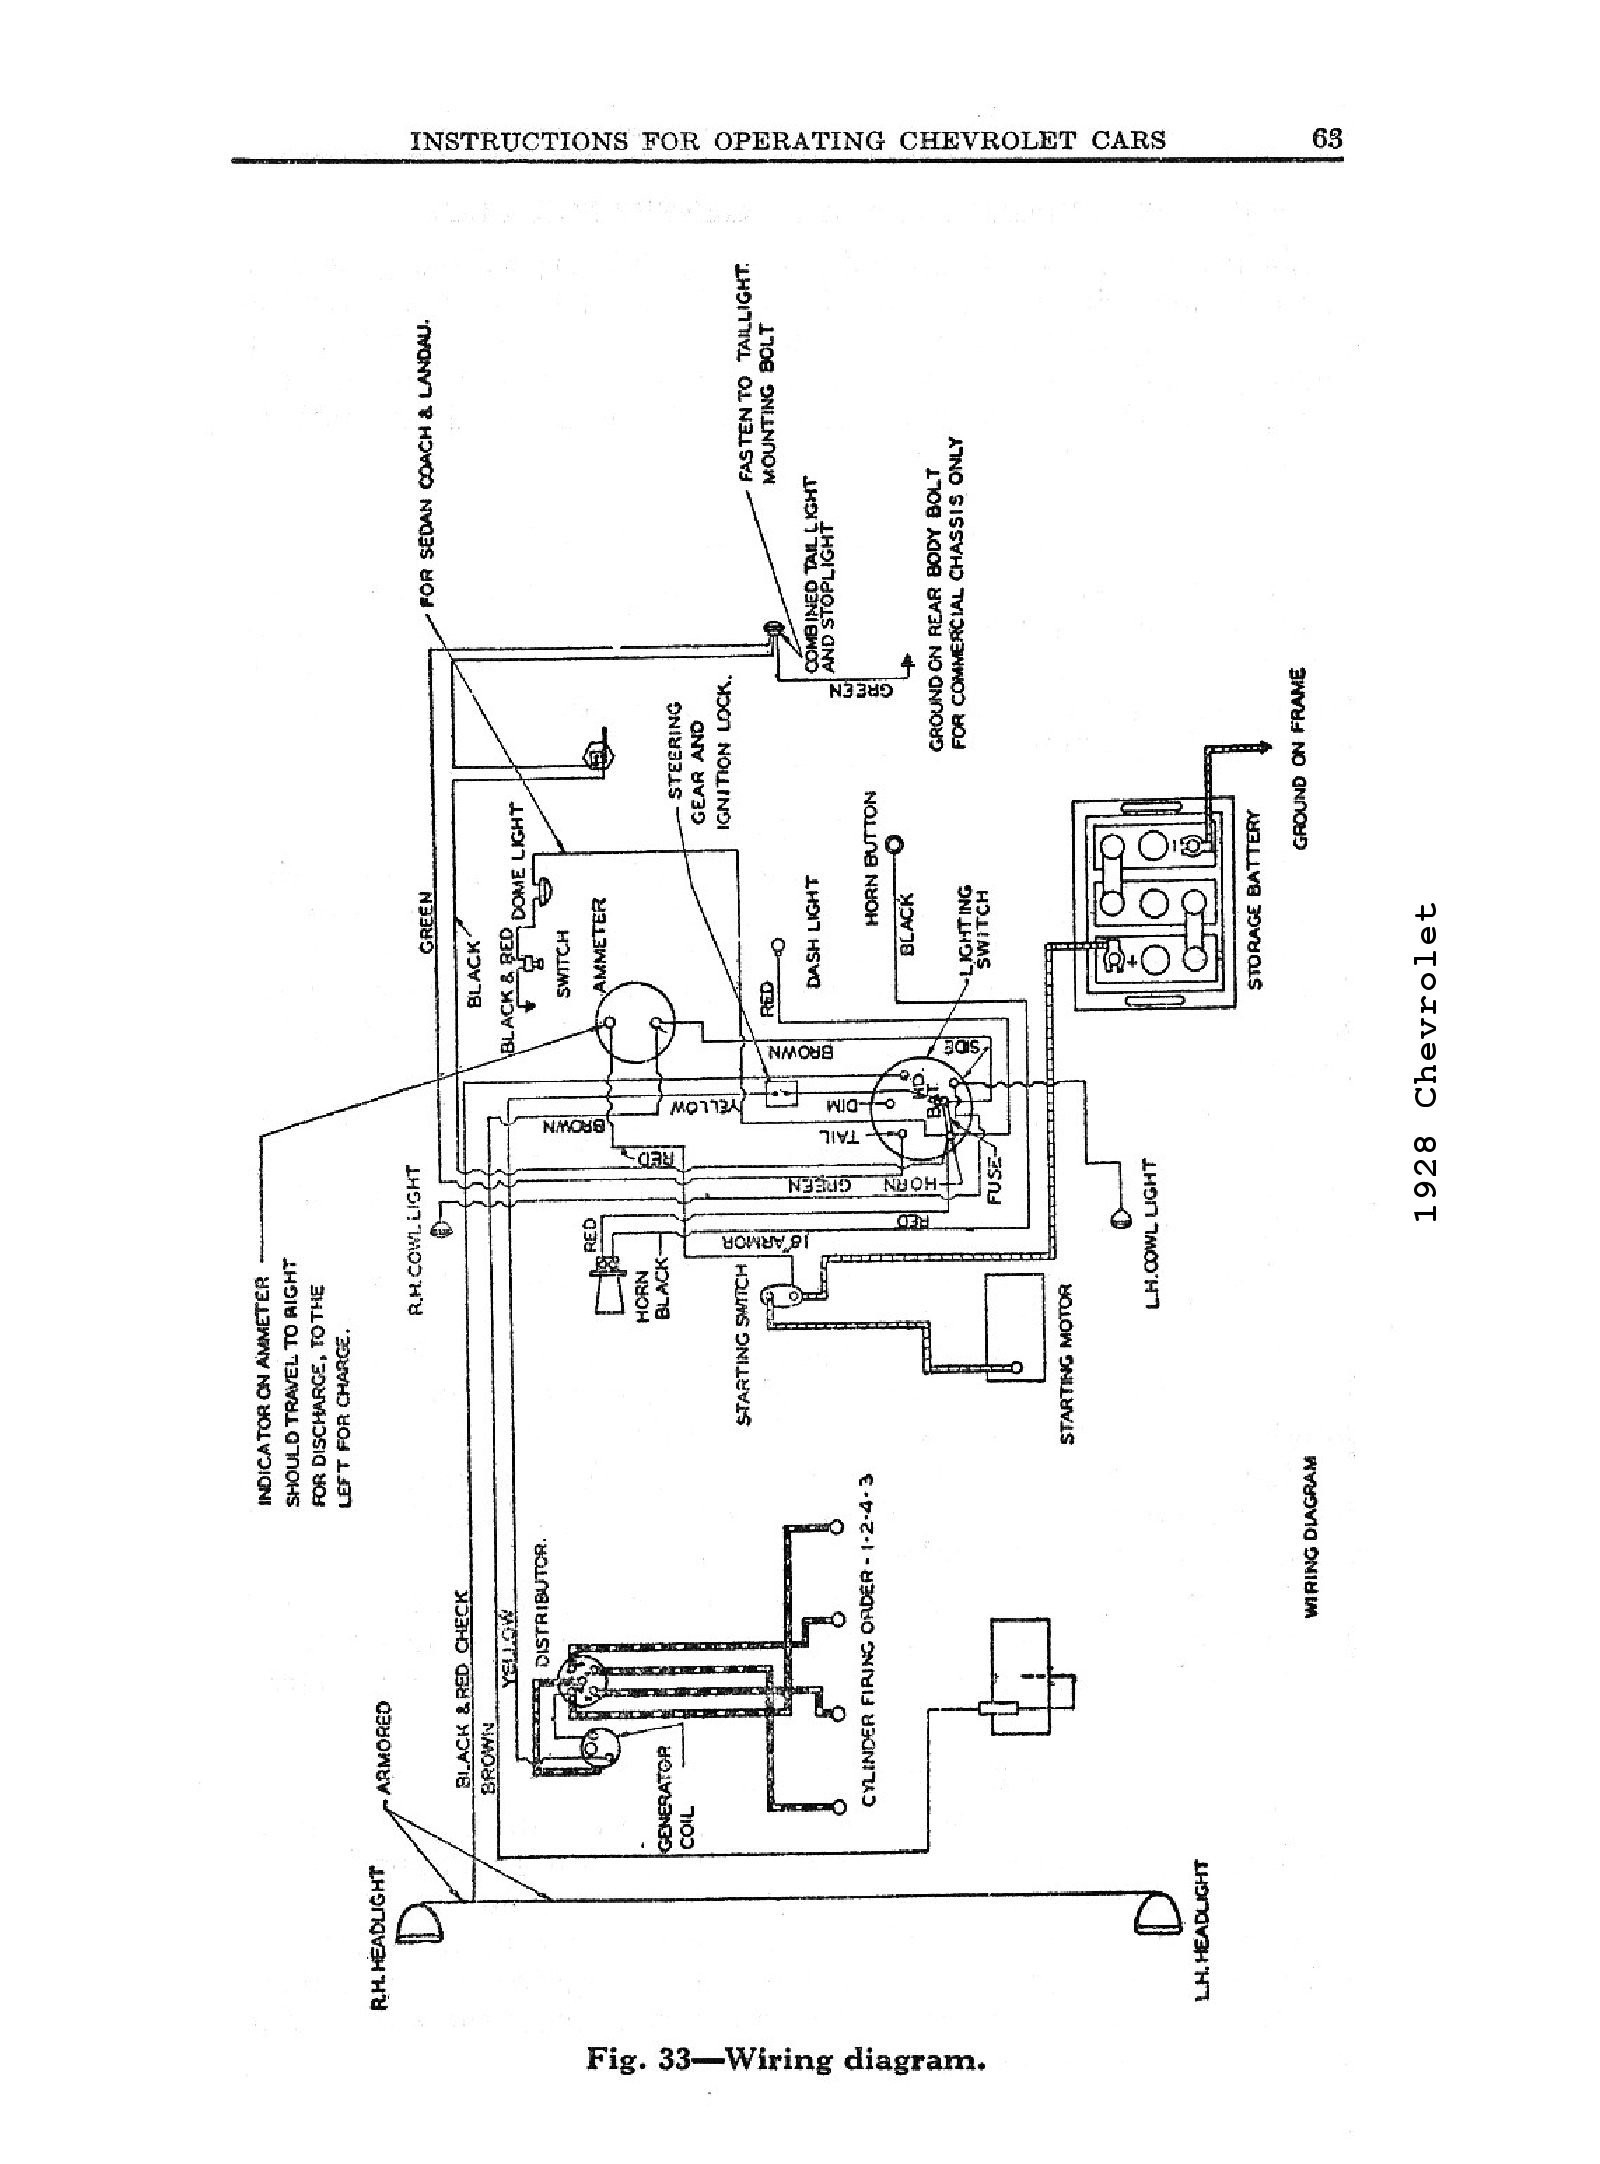 Chevy Steering Column Wiring Diagram For A 39